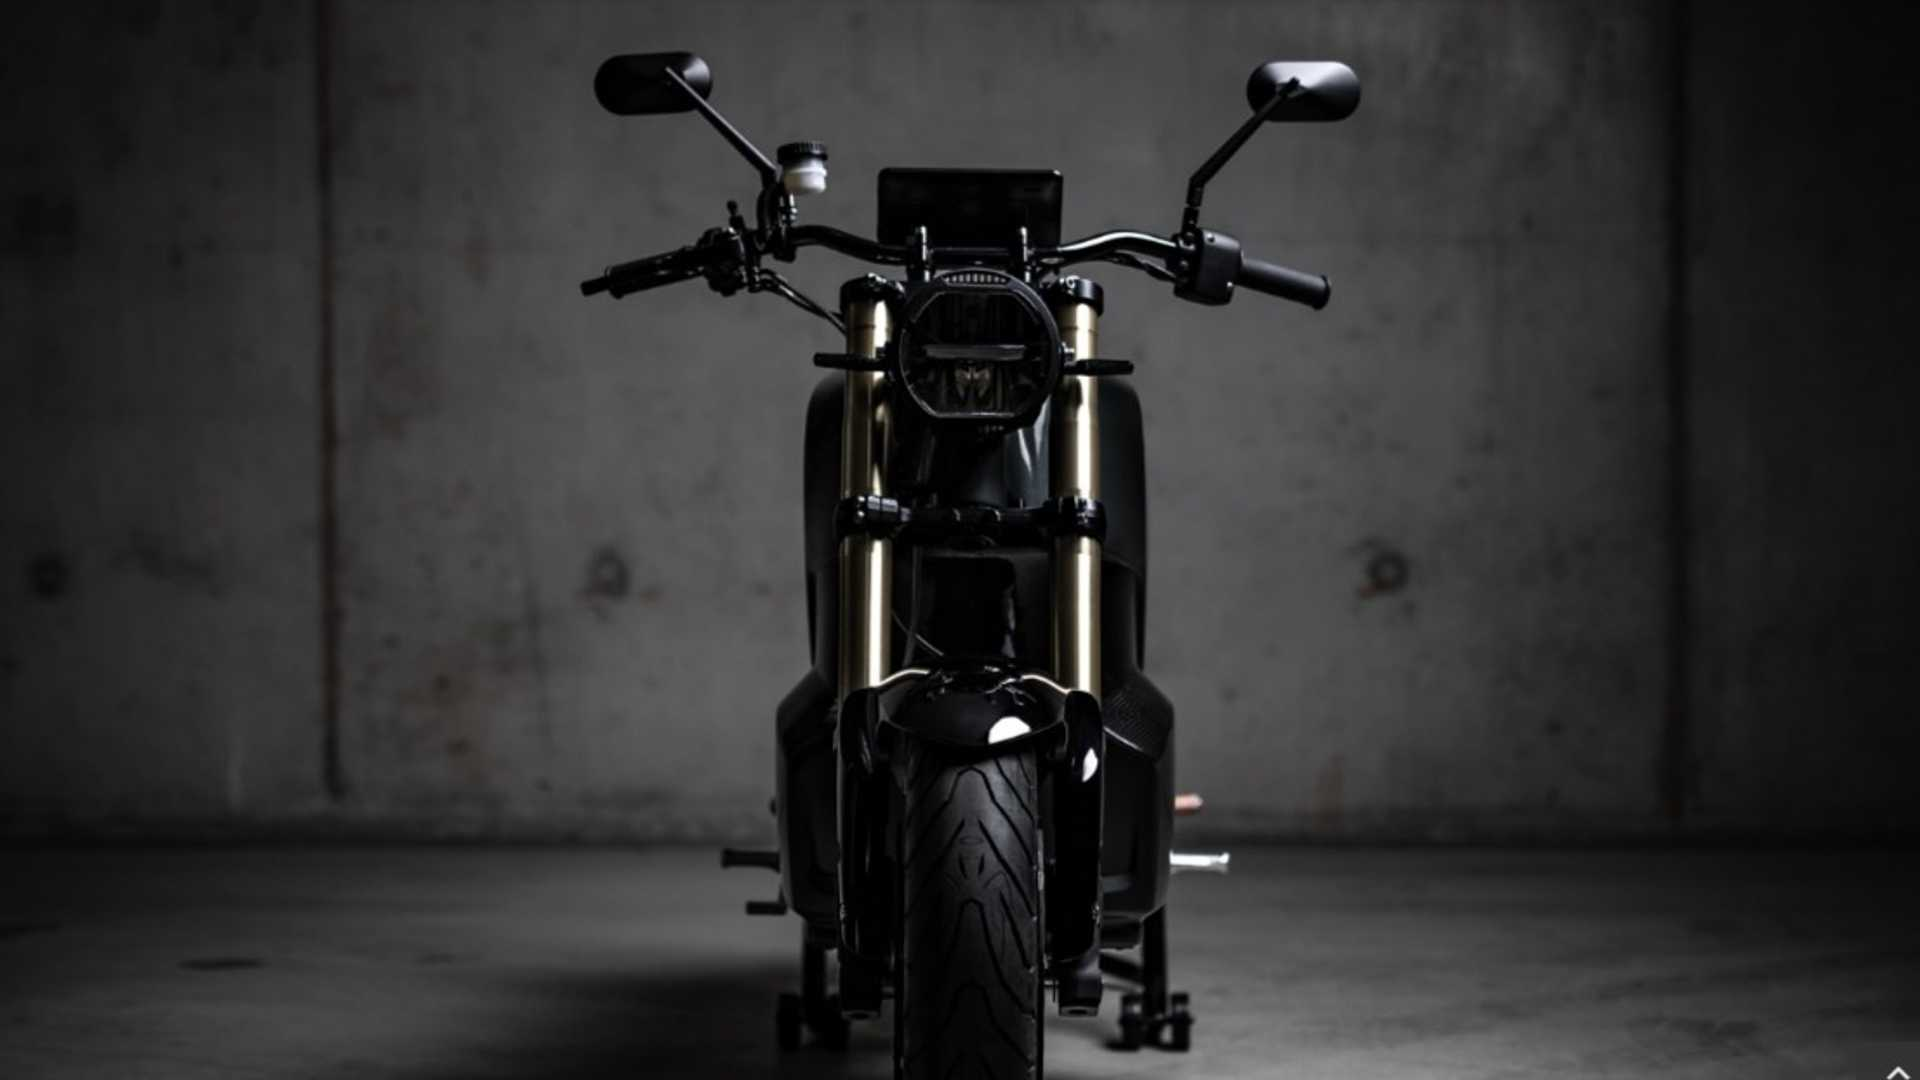 NXT Rage electric motorcycle